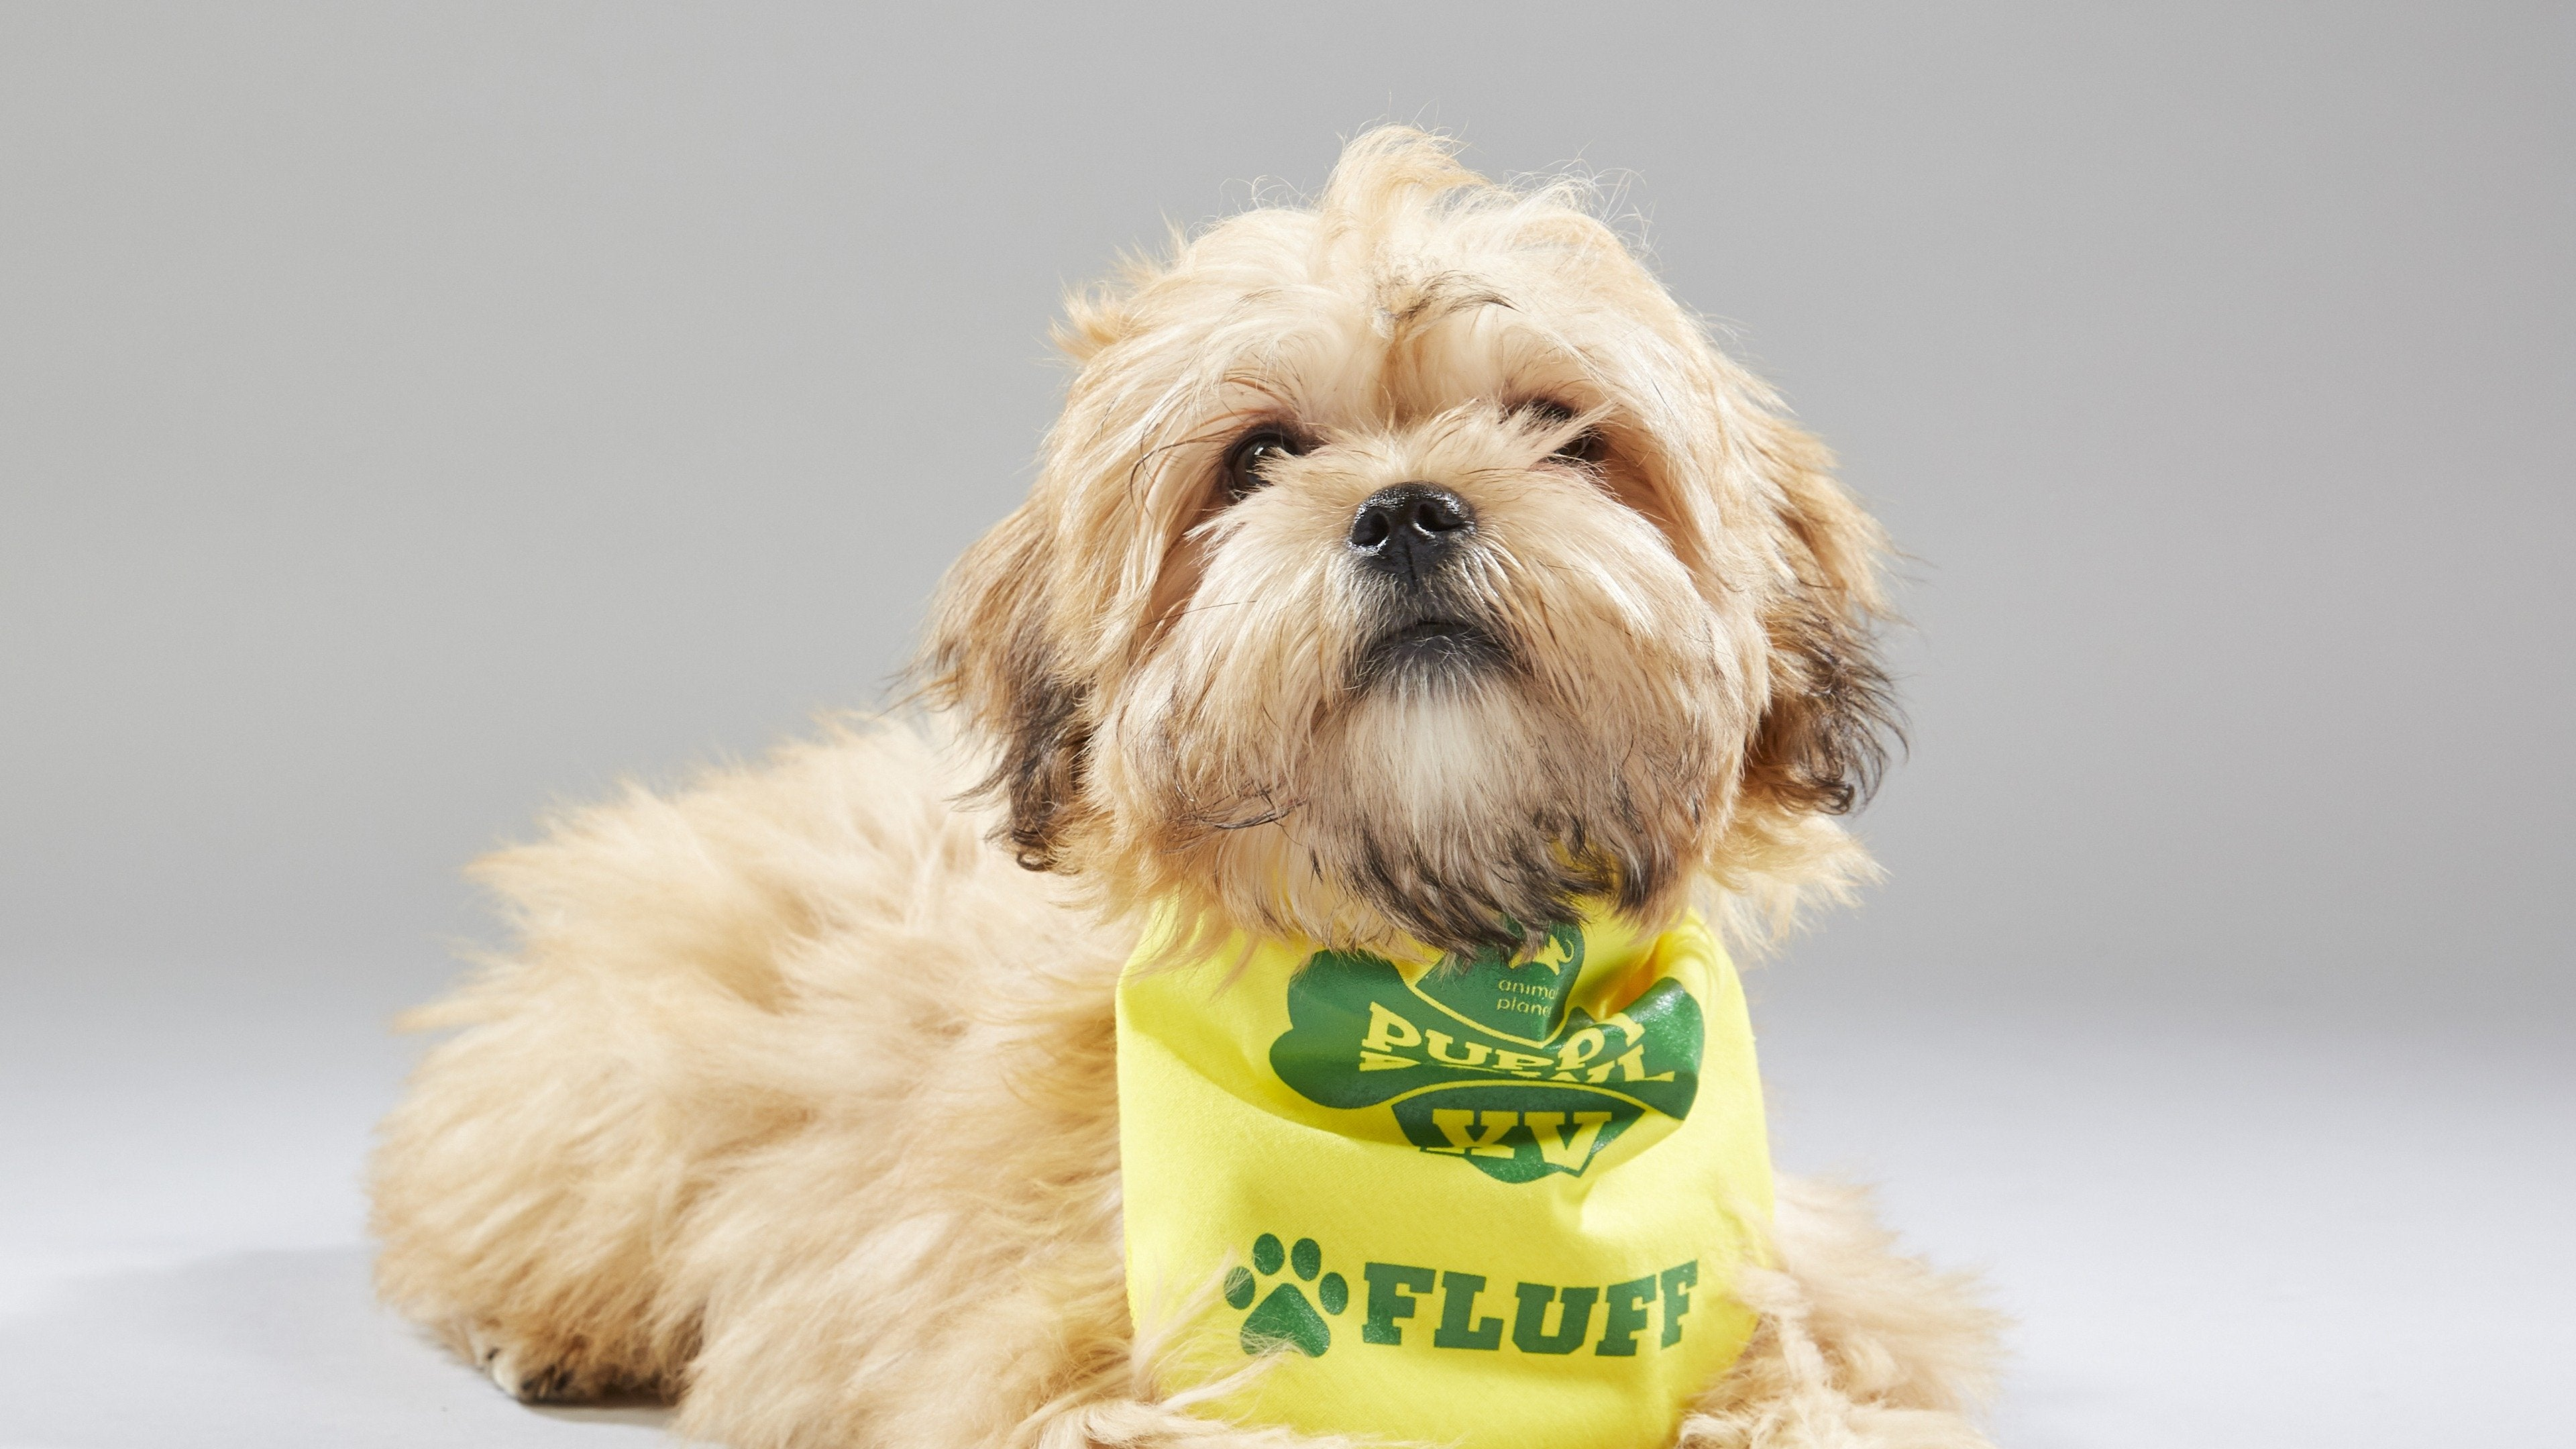 Puppy Bowl XV Presents: America's Cutest